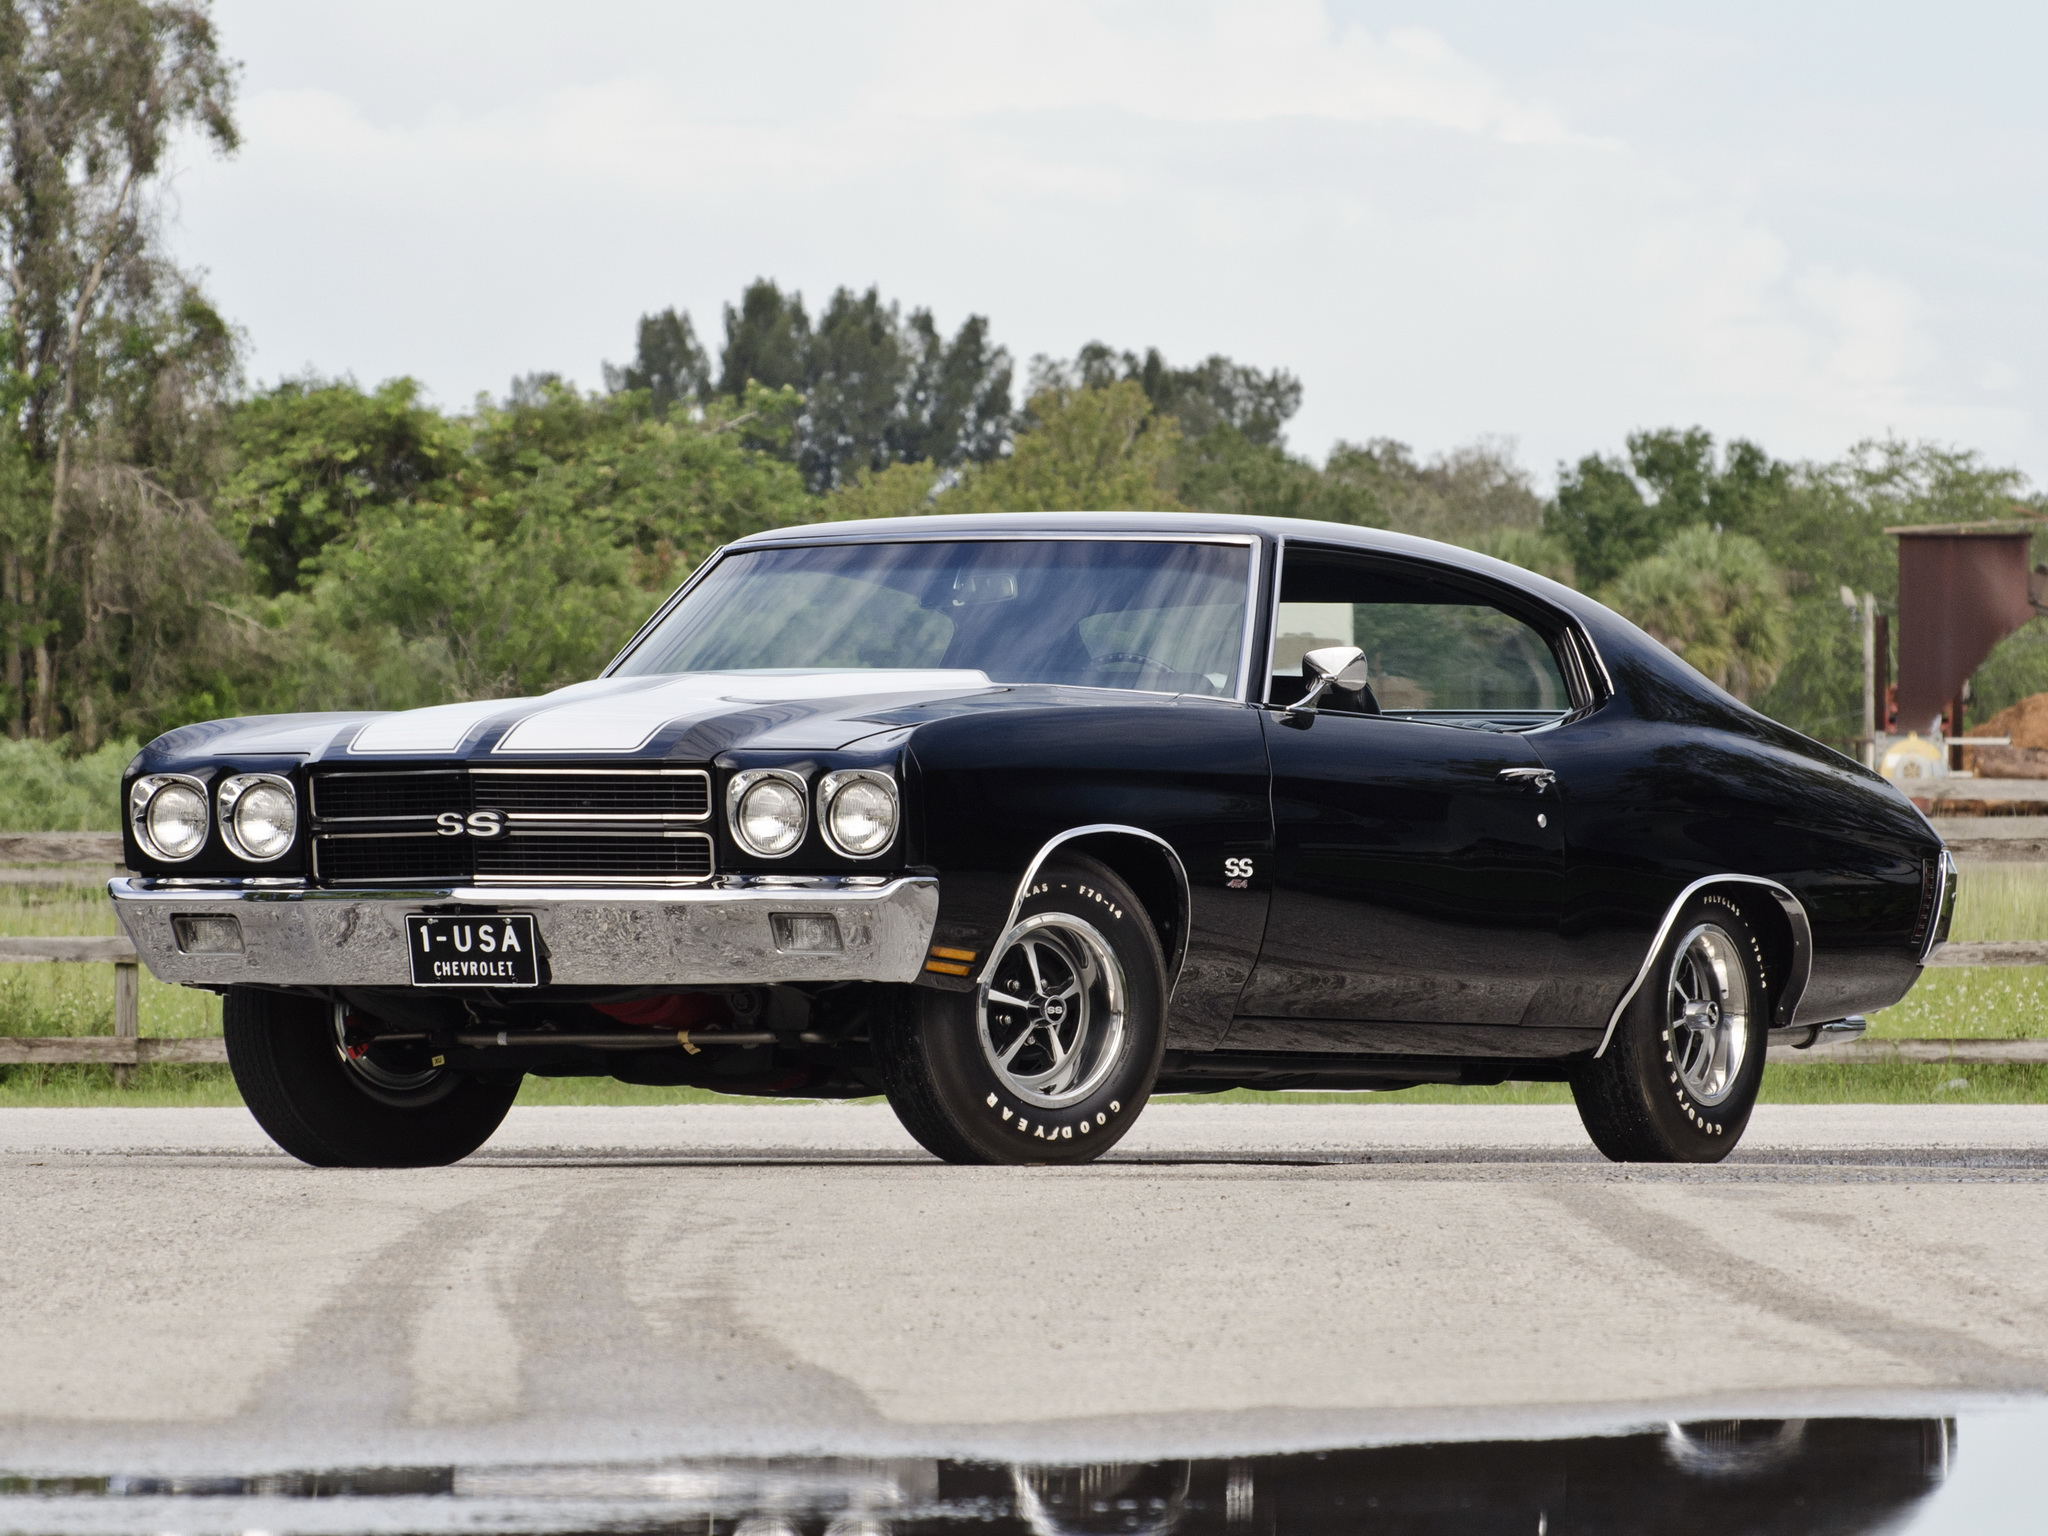 1970 Chevrolet Chevelle SS 454 LS6 Hardtop Coupe muscle classic